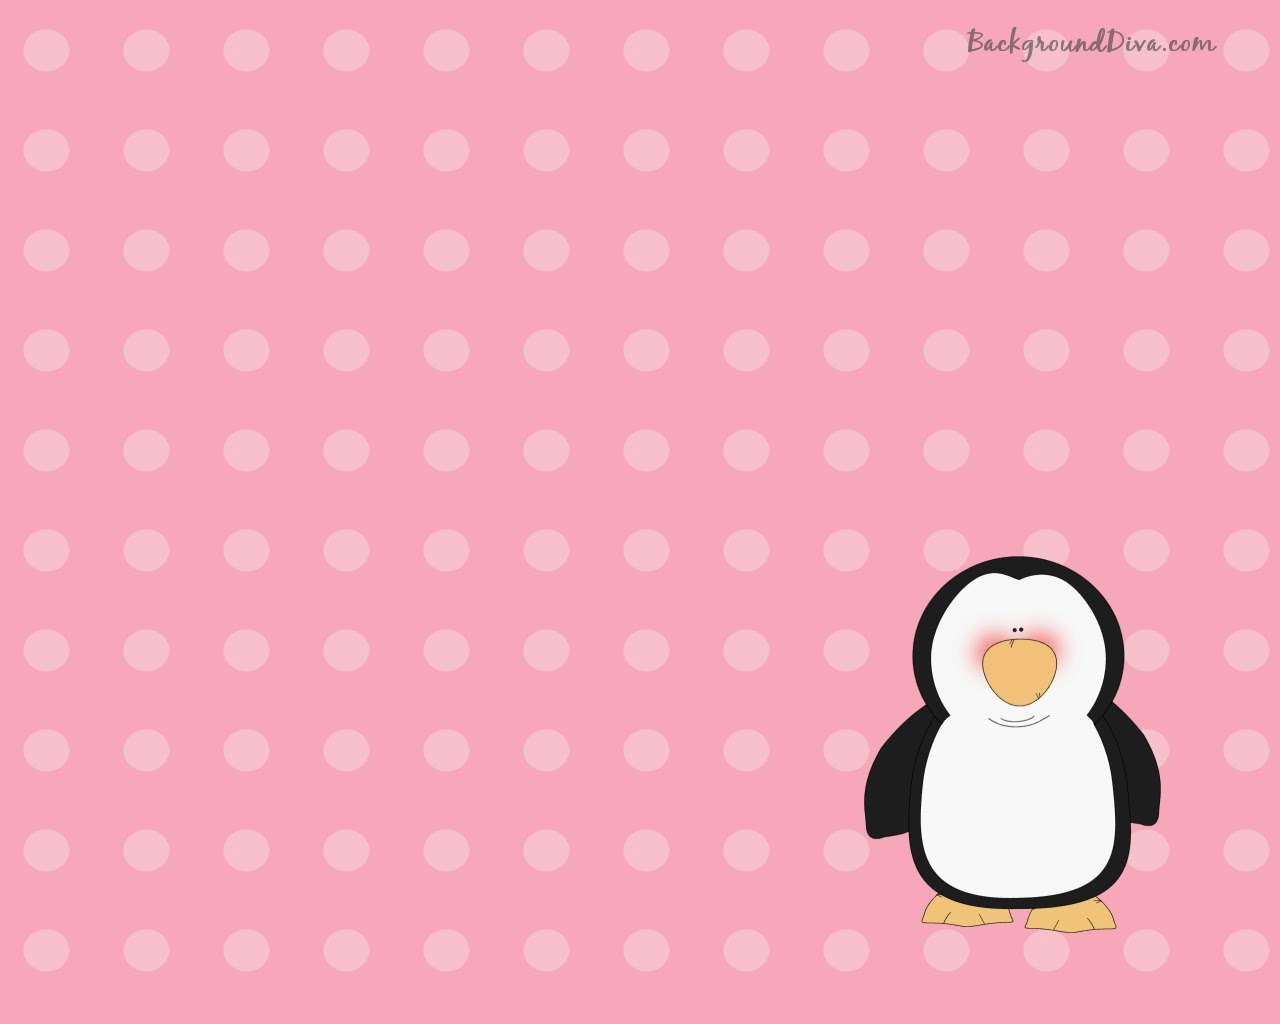 Cute Wallpapers for Girls Pink Cute Wallpapers for Desktop Funny 1280x1024